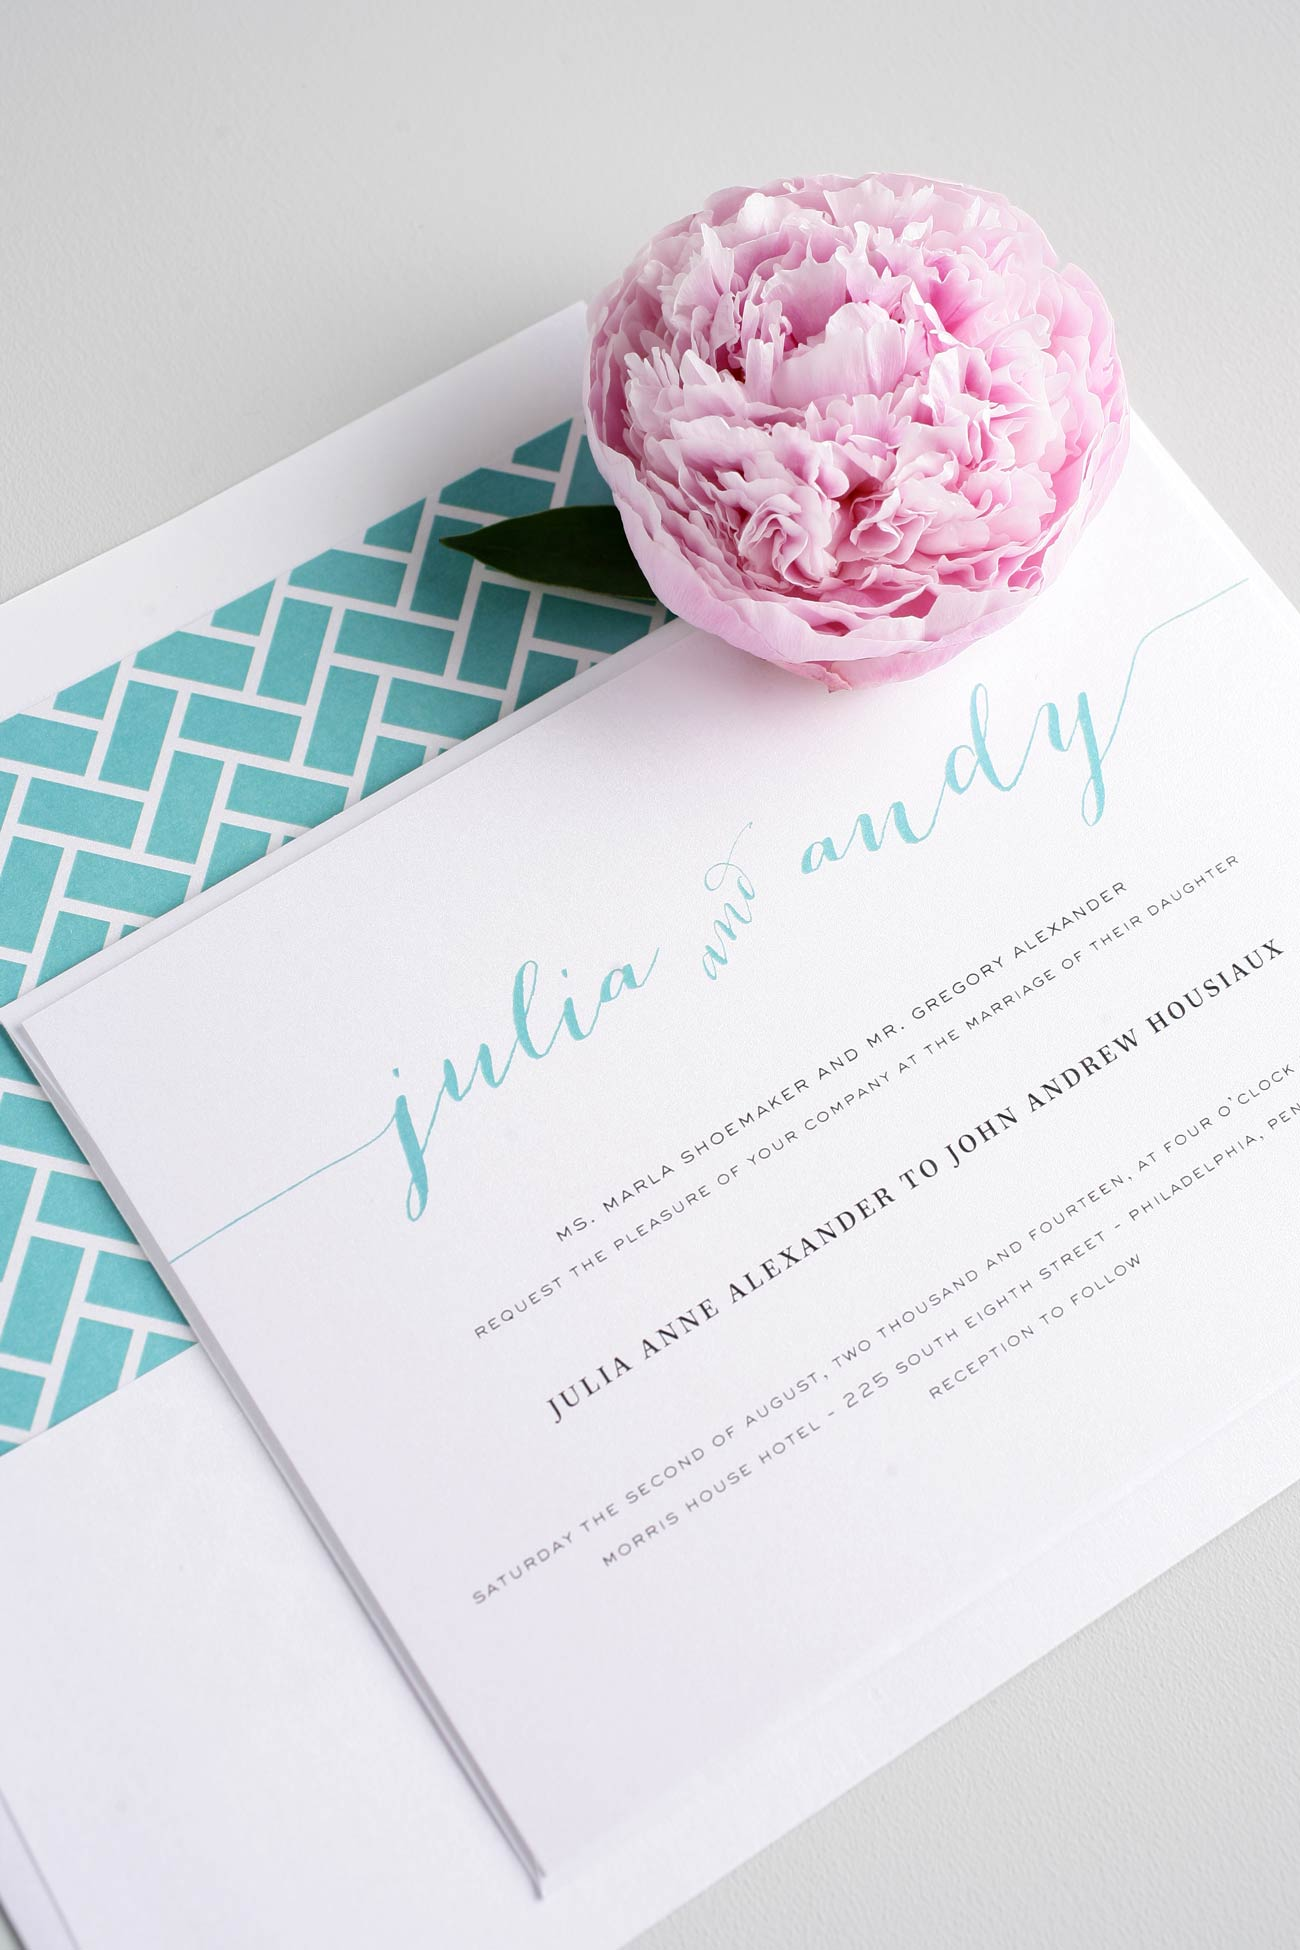 Chic Calligraphy wedding invitations in aqua